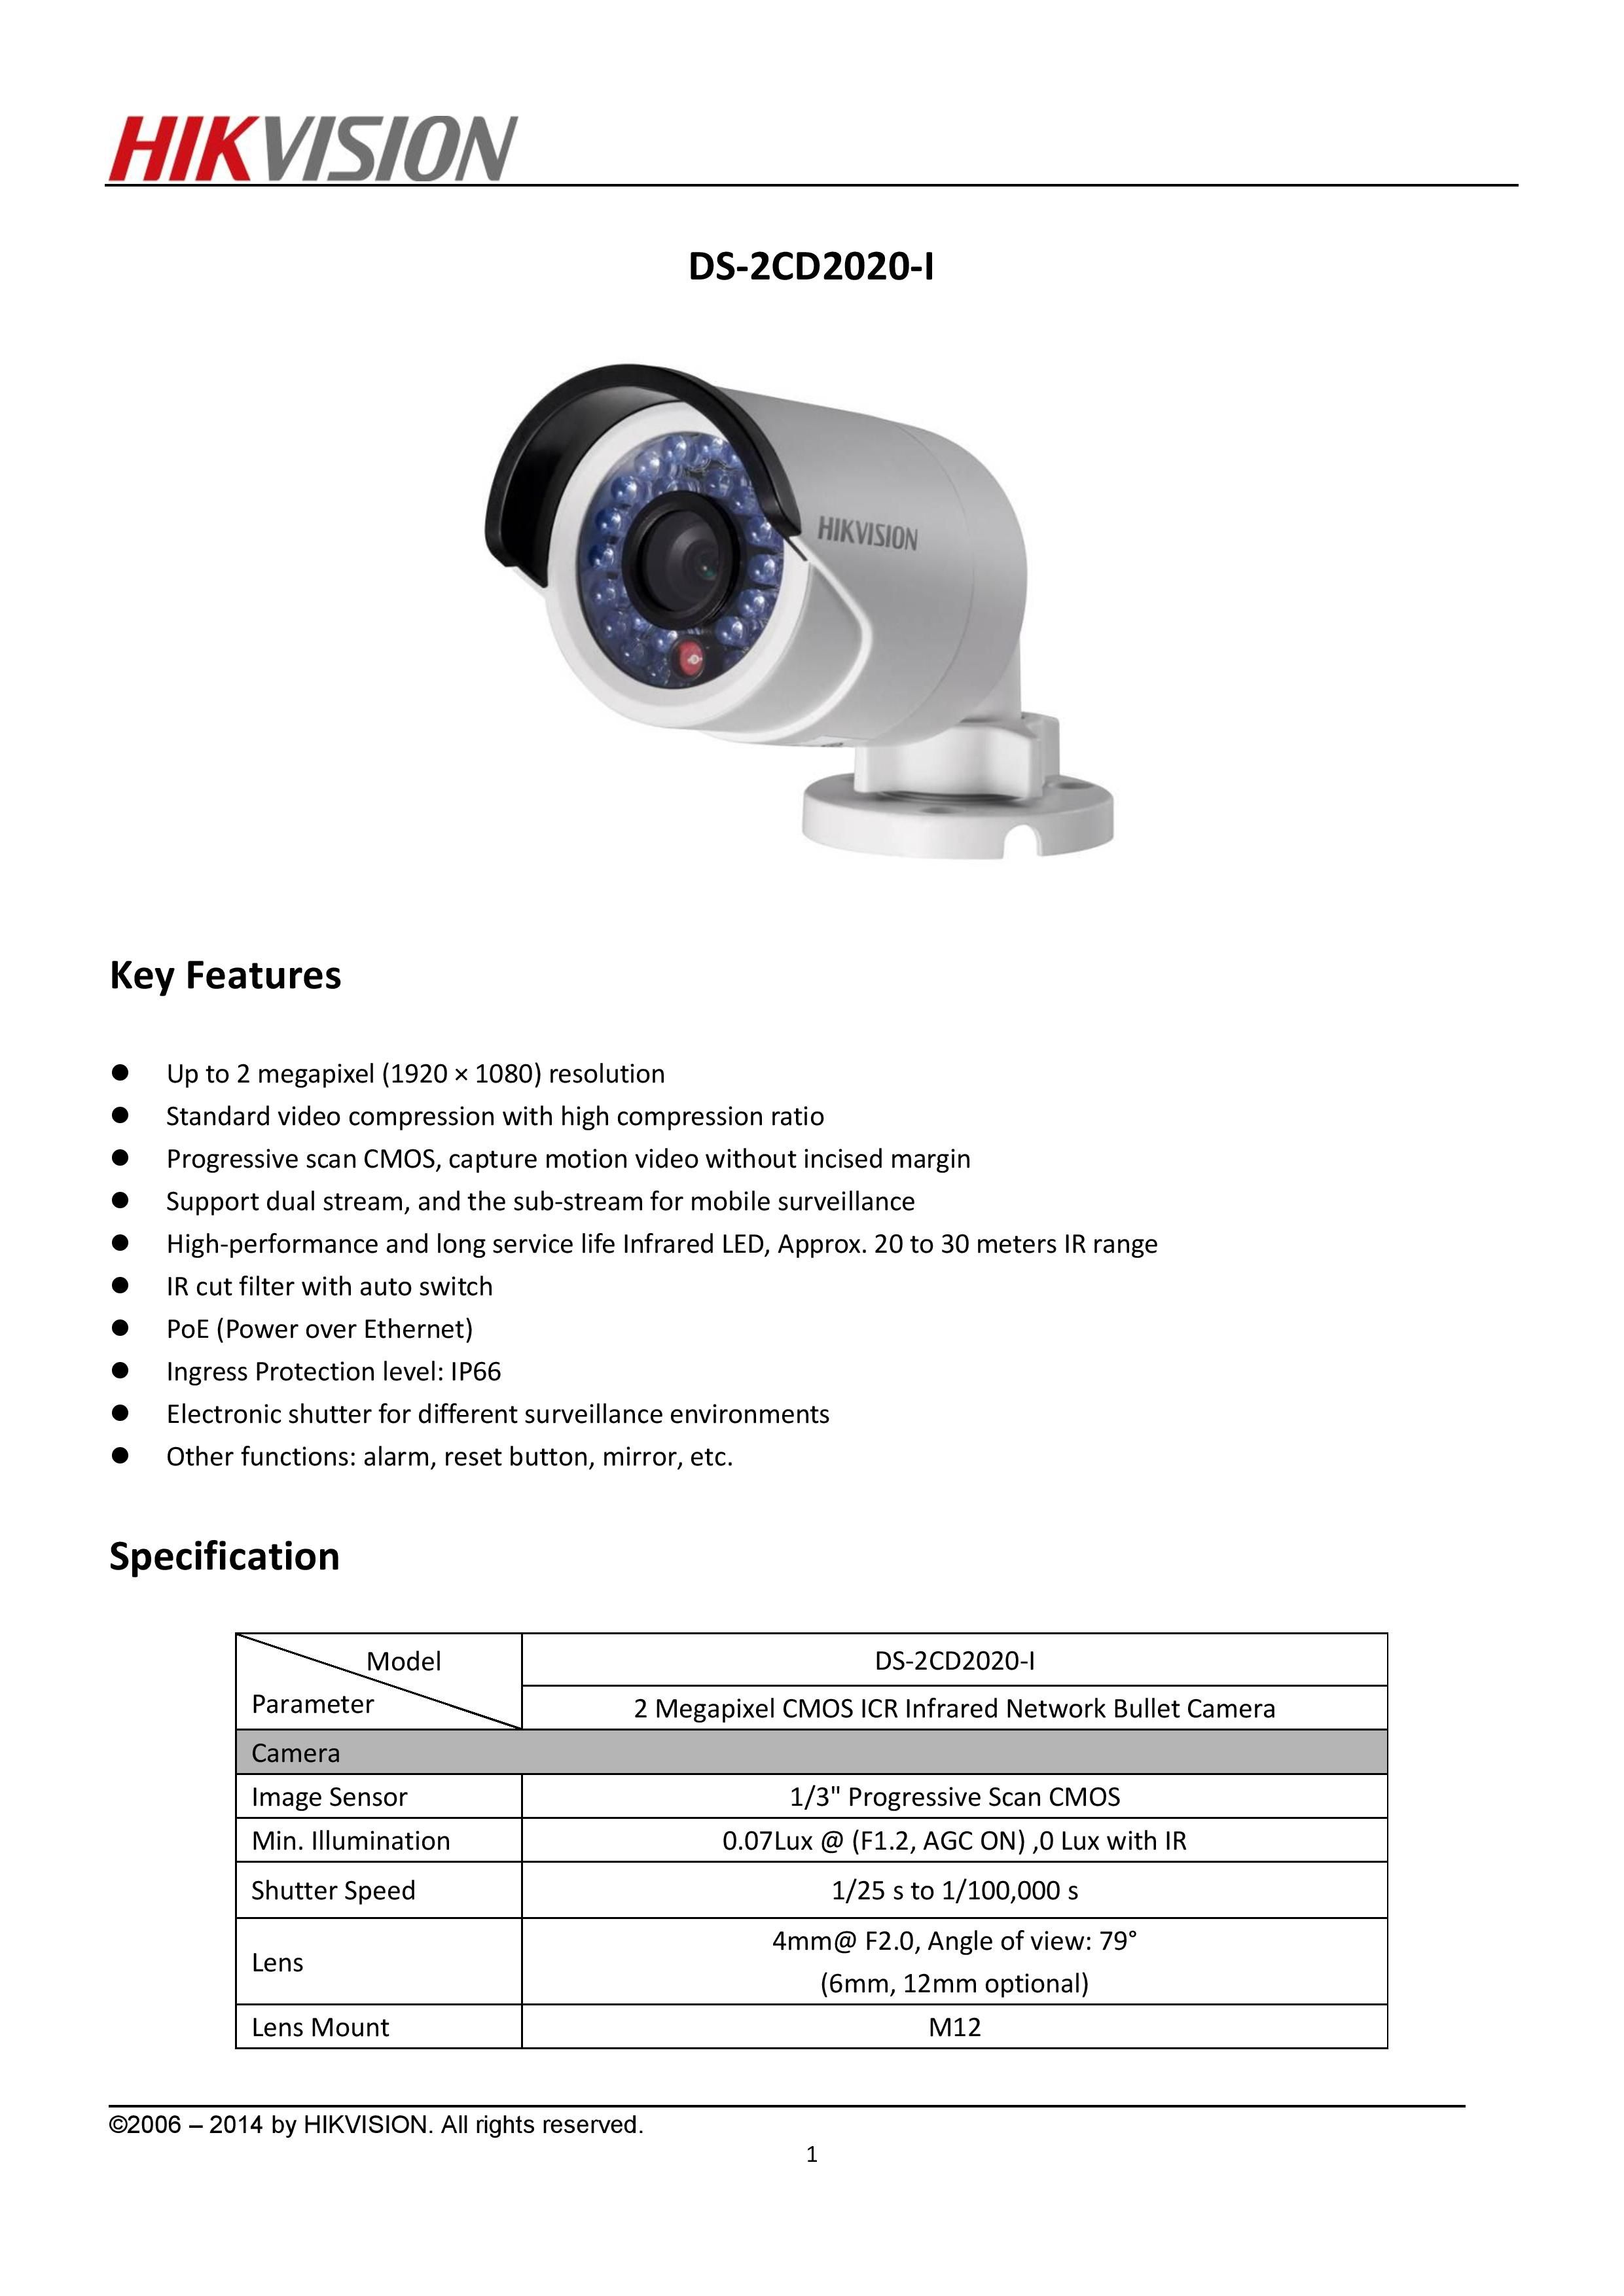 Pin by HIKVISION EGYPT on HIkVision Egypt Security Camera | Security